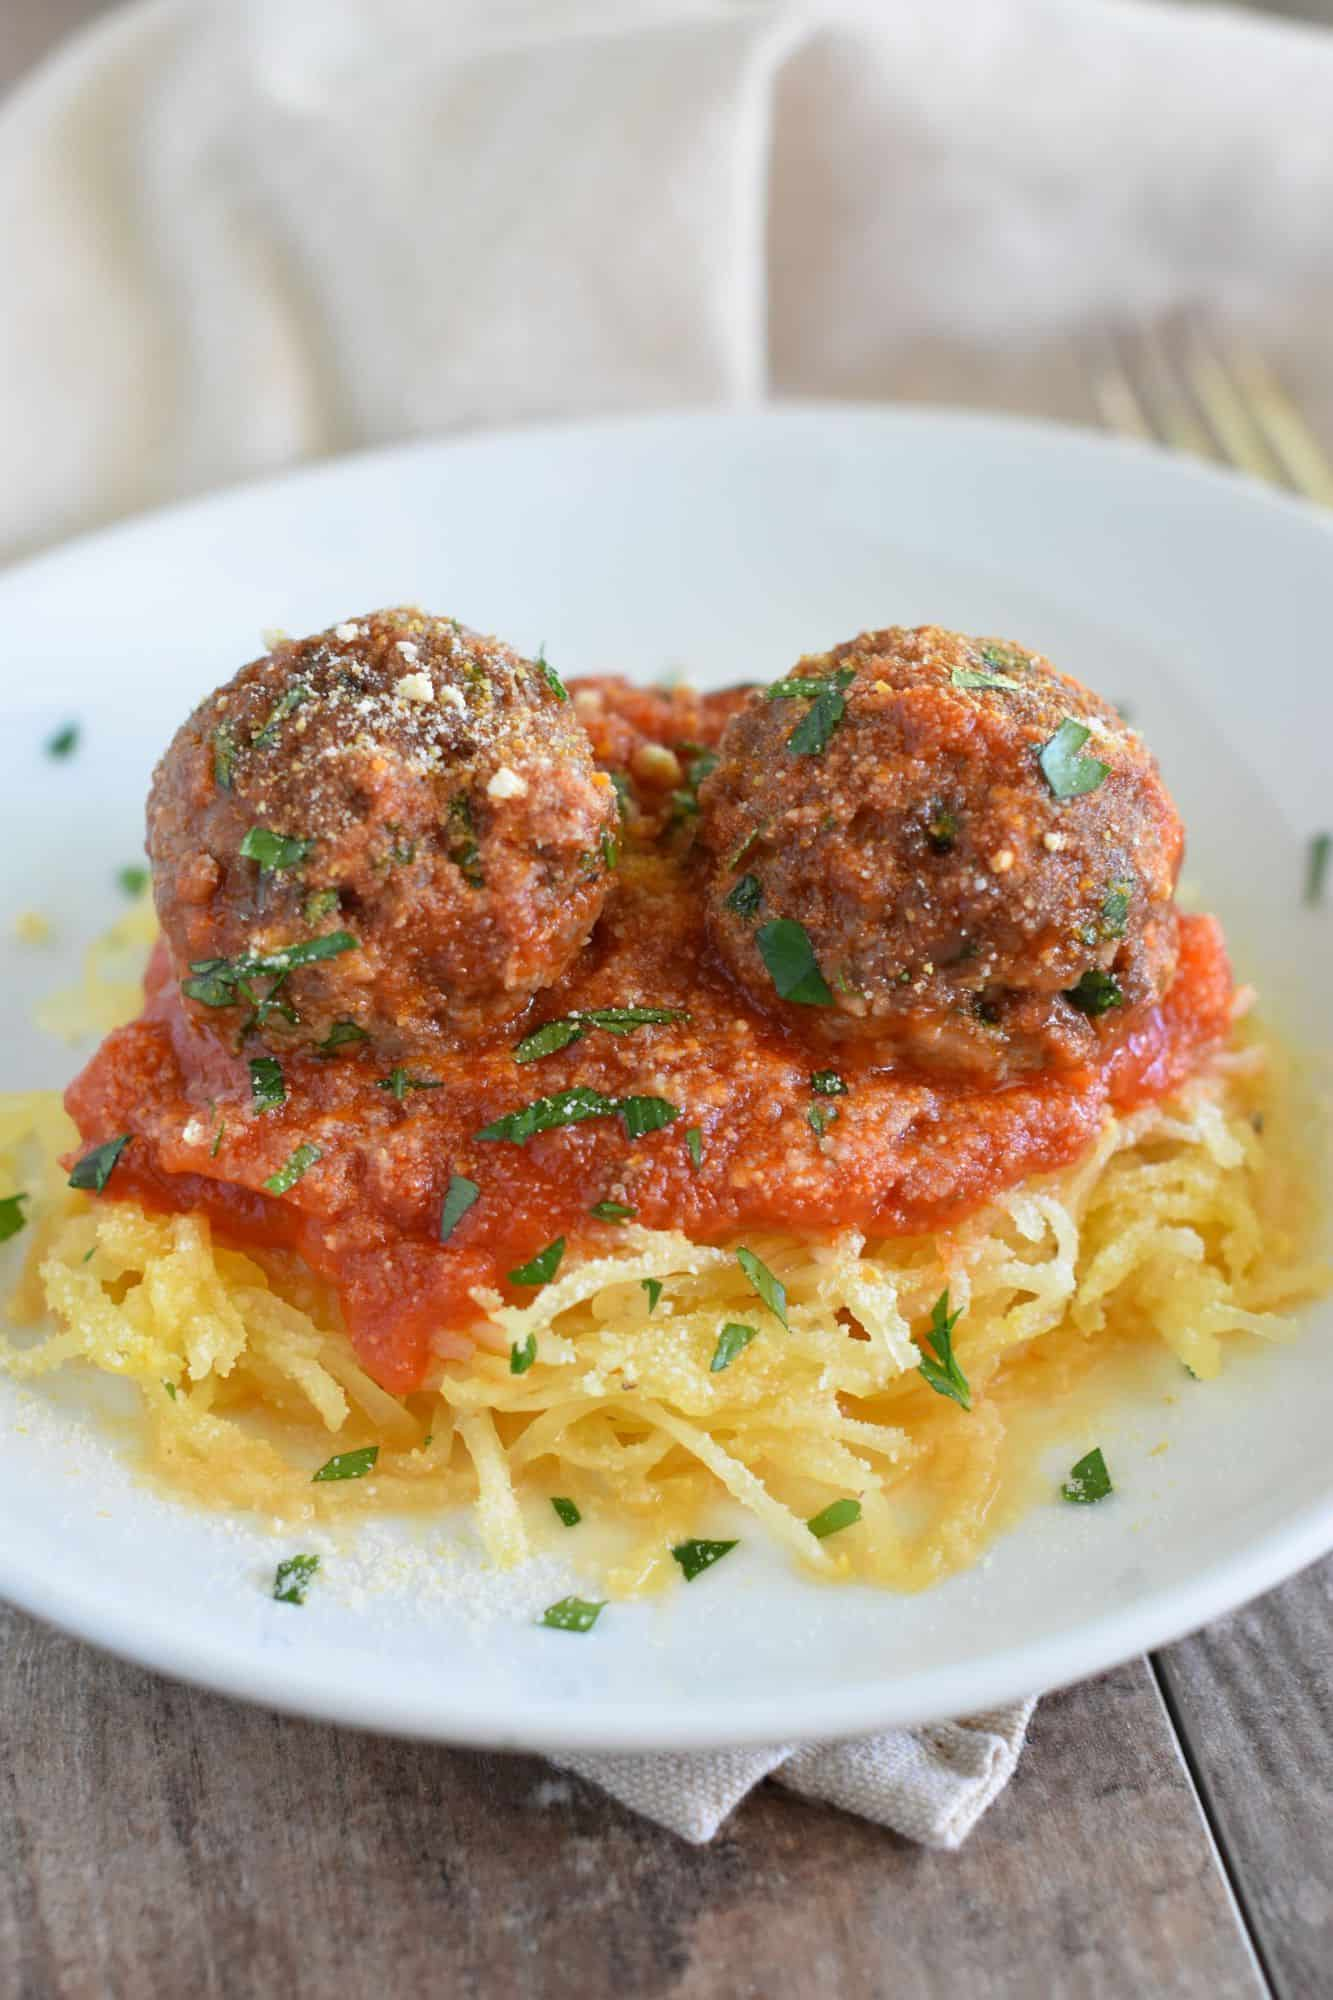 two meatballs with sauce on spaghetti squash on white plate